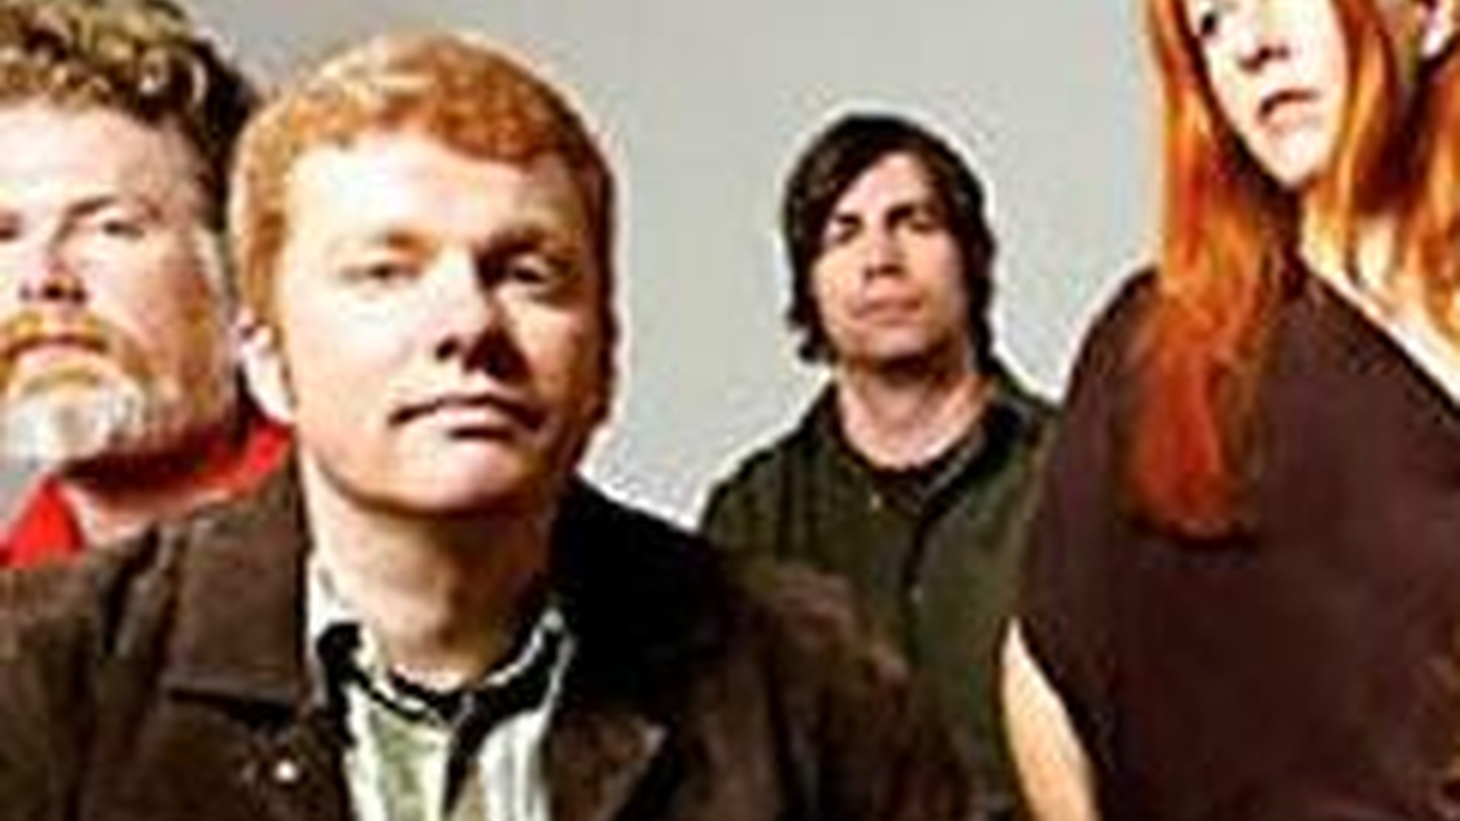 The New Pornographers  share tracks from their latest recording, Challenger, when they perform on Morning Becomes Eclectic at 11:15am.